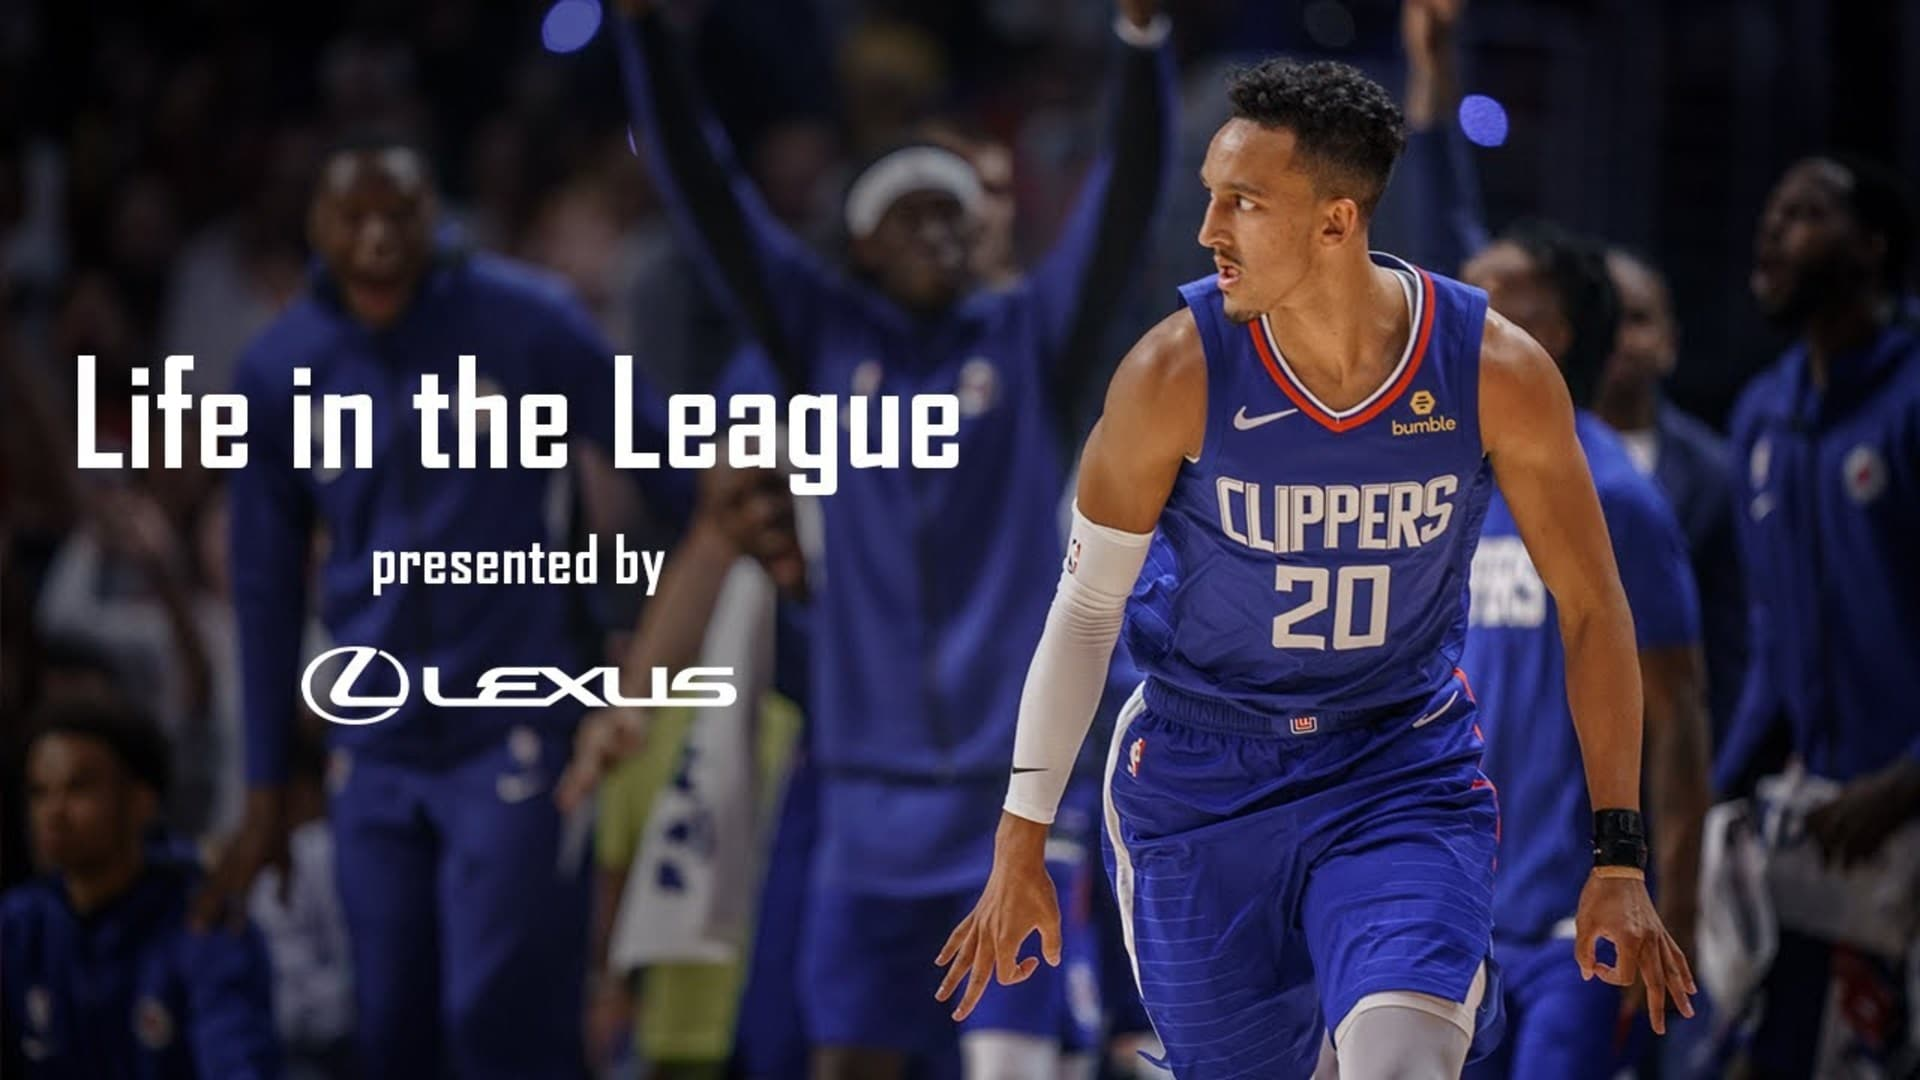 Cooking Barbecue Chicken with Landry Shamet | Life in the League